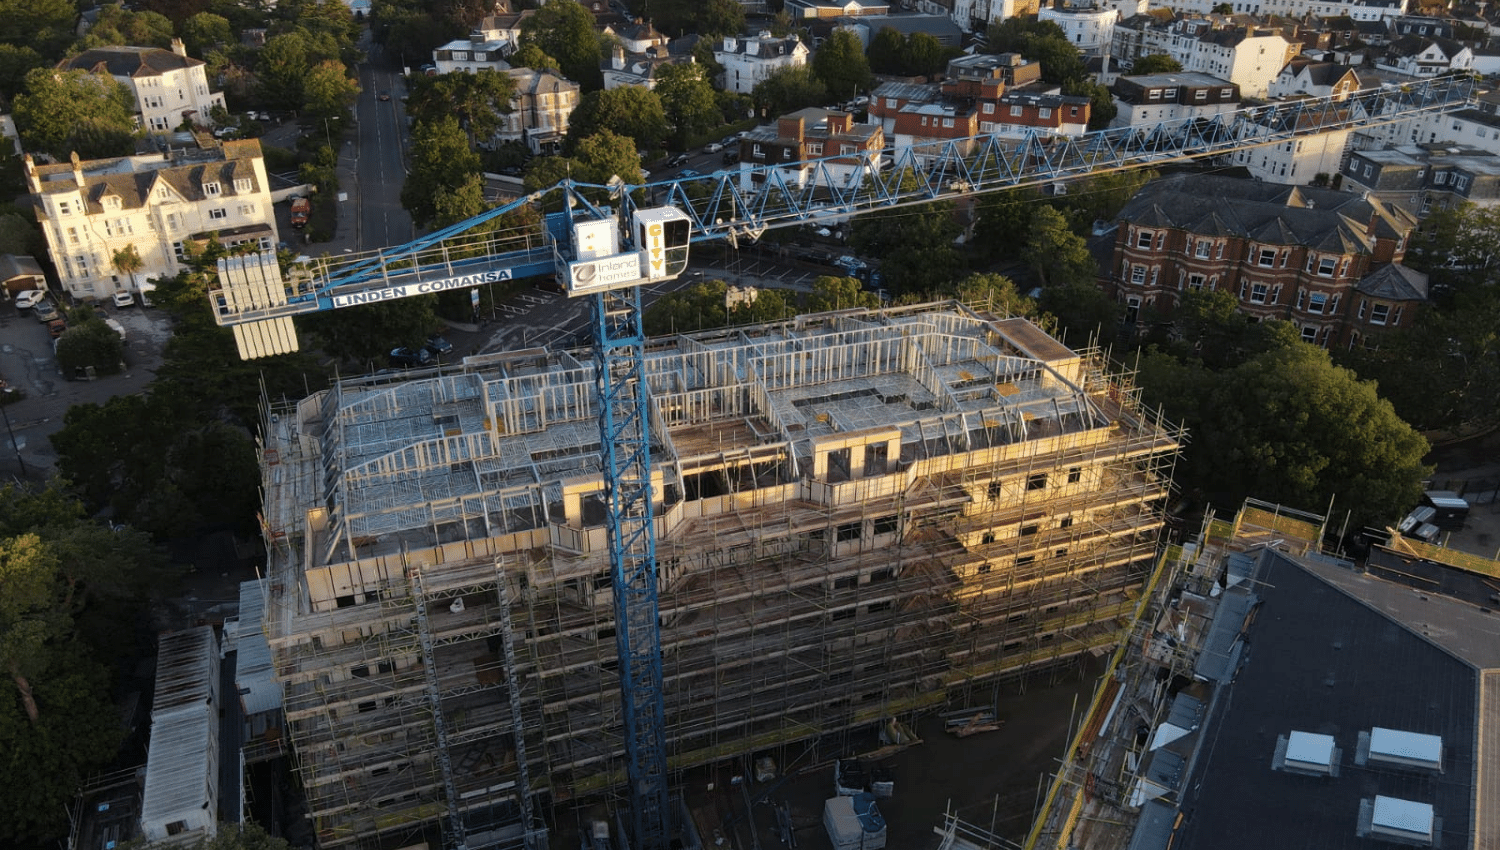 THE HISTORY AND CONSTRUCTION OF A SEASIDE LUXURY APARTMENT DEVELOPMENT